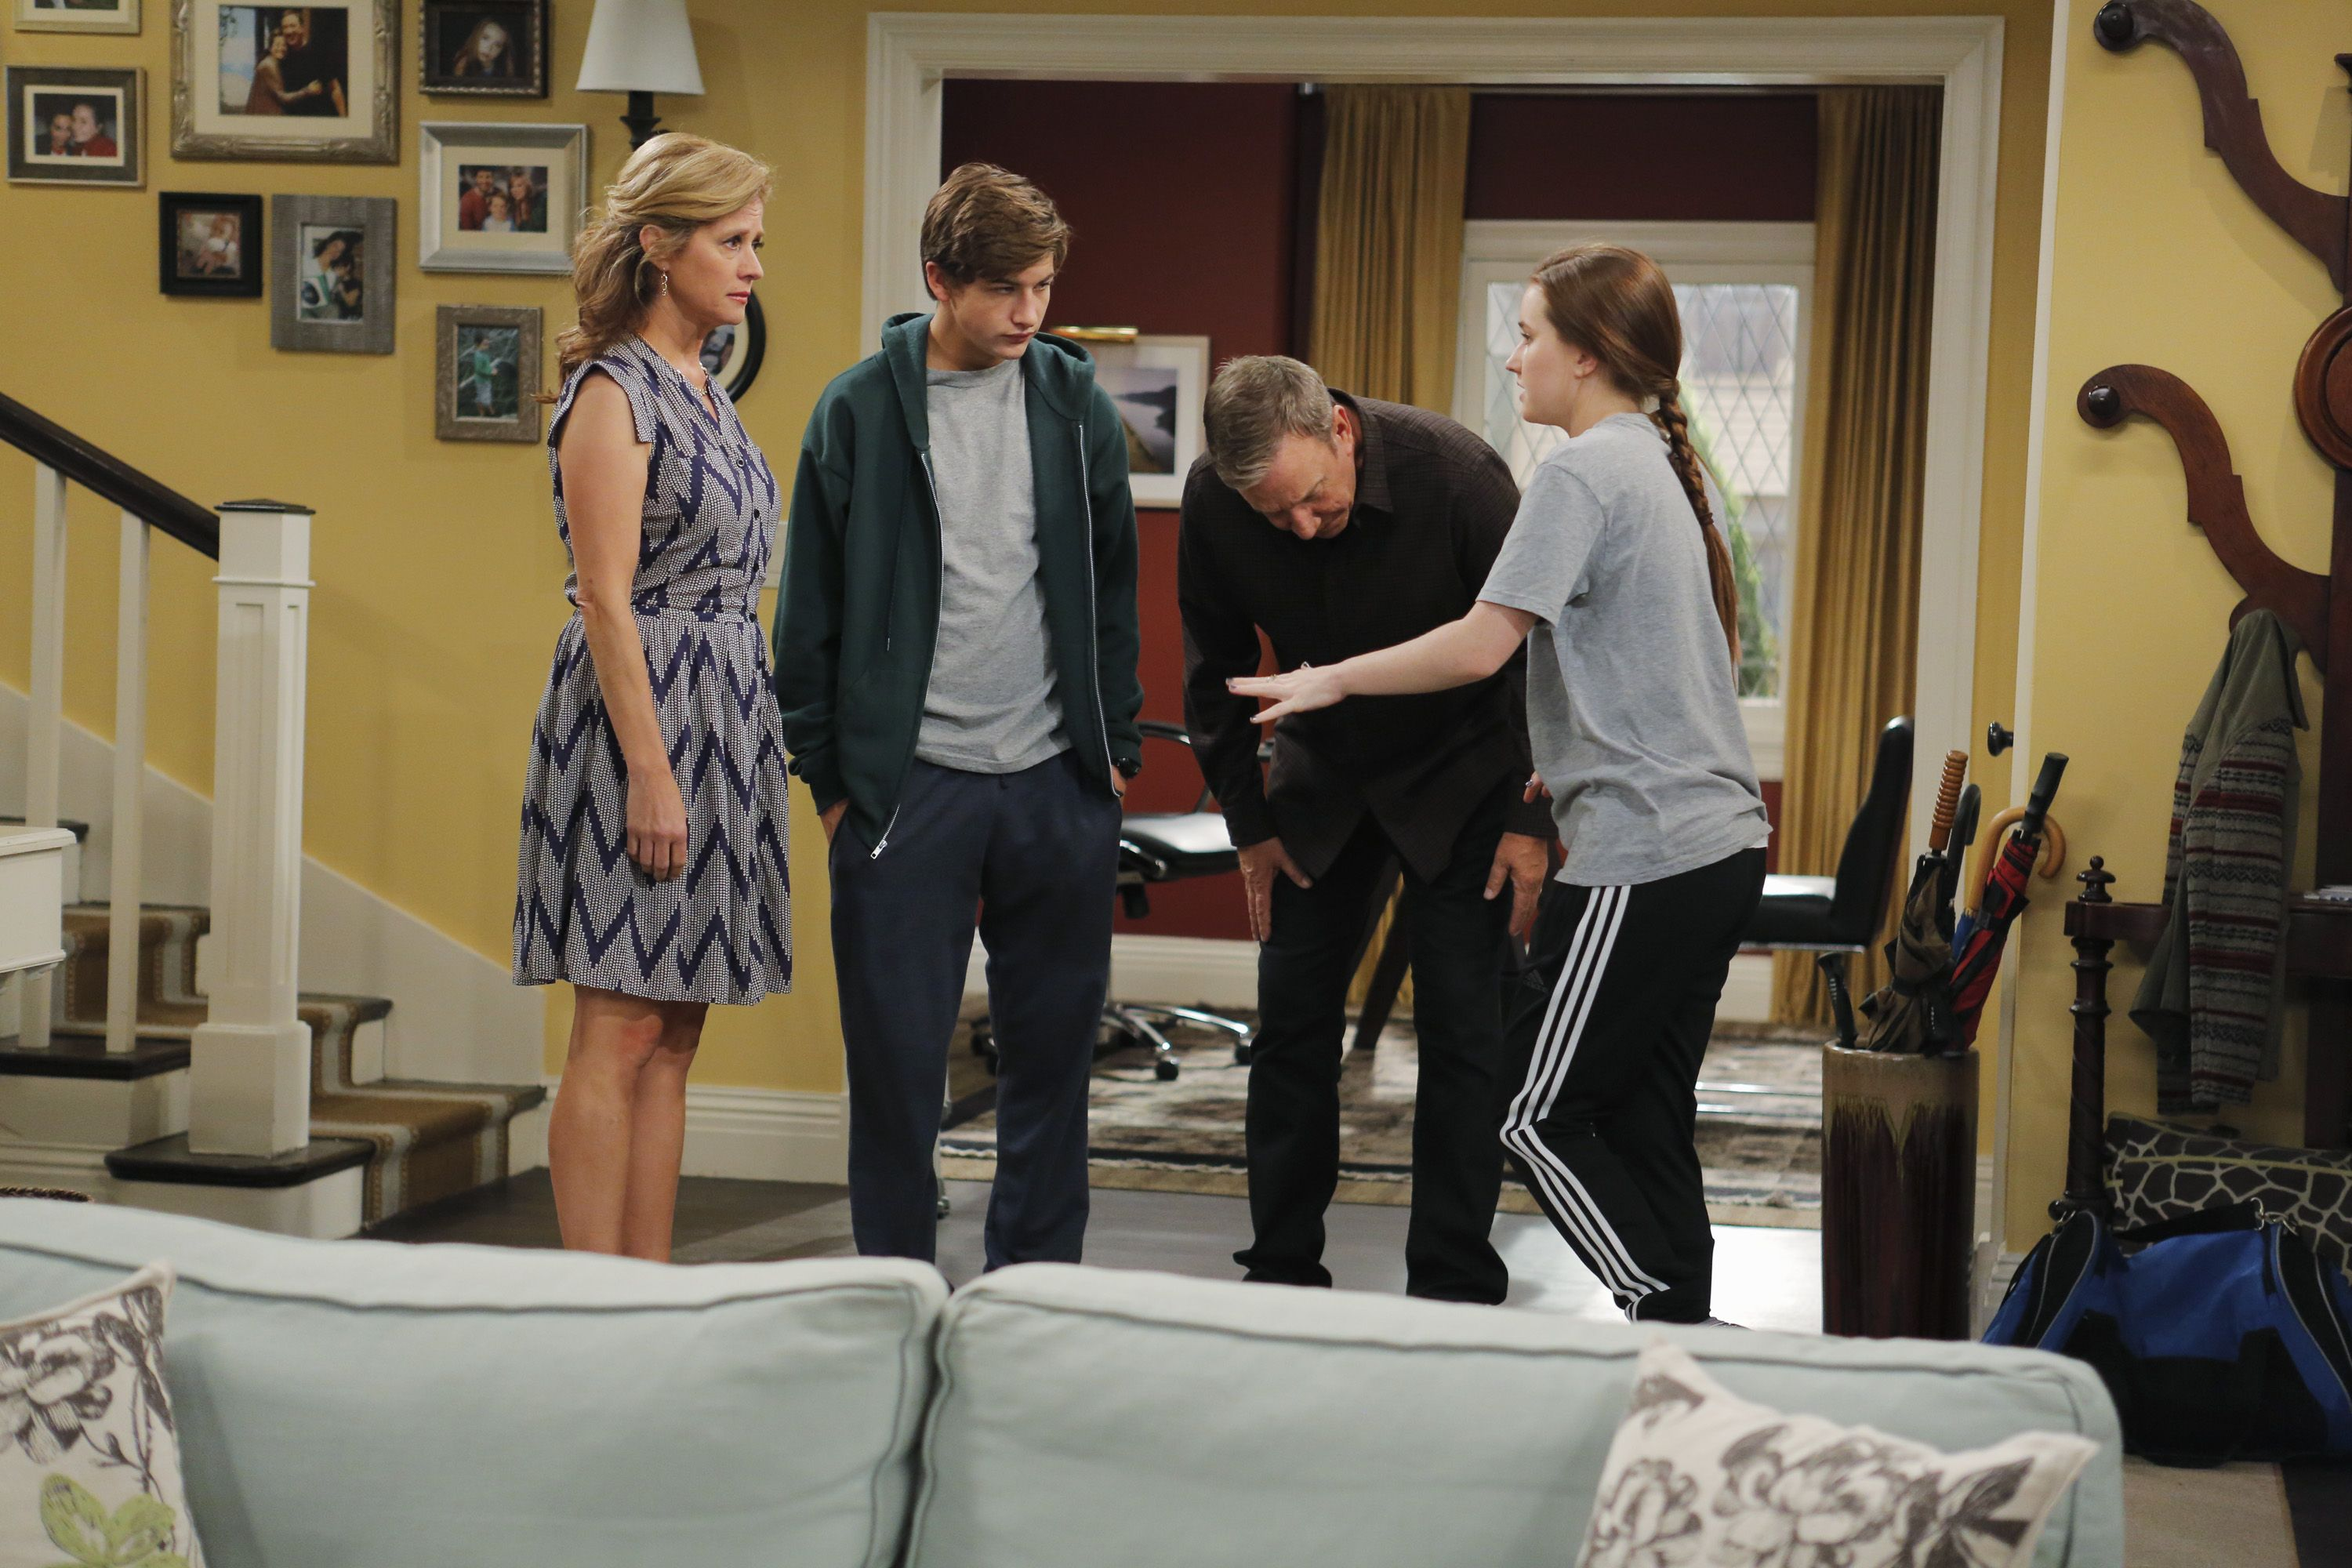 'Last Man Standing' Star Tim Allen Just Announced Another Major Change To The Show